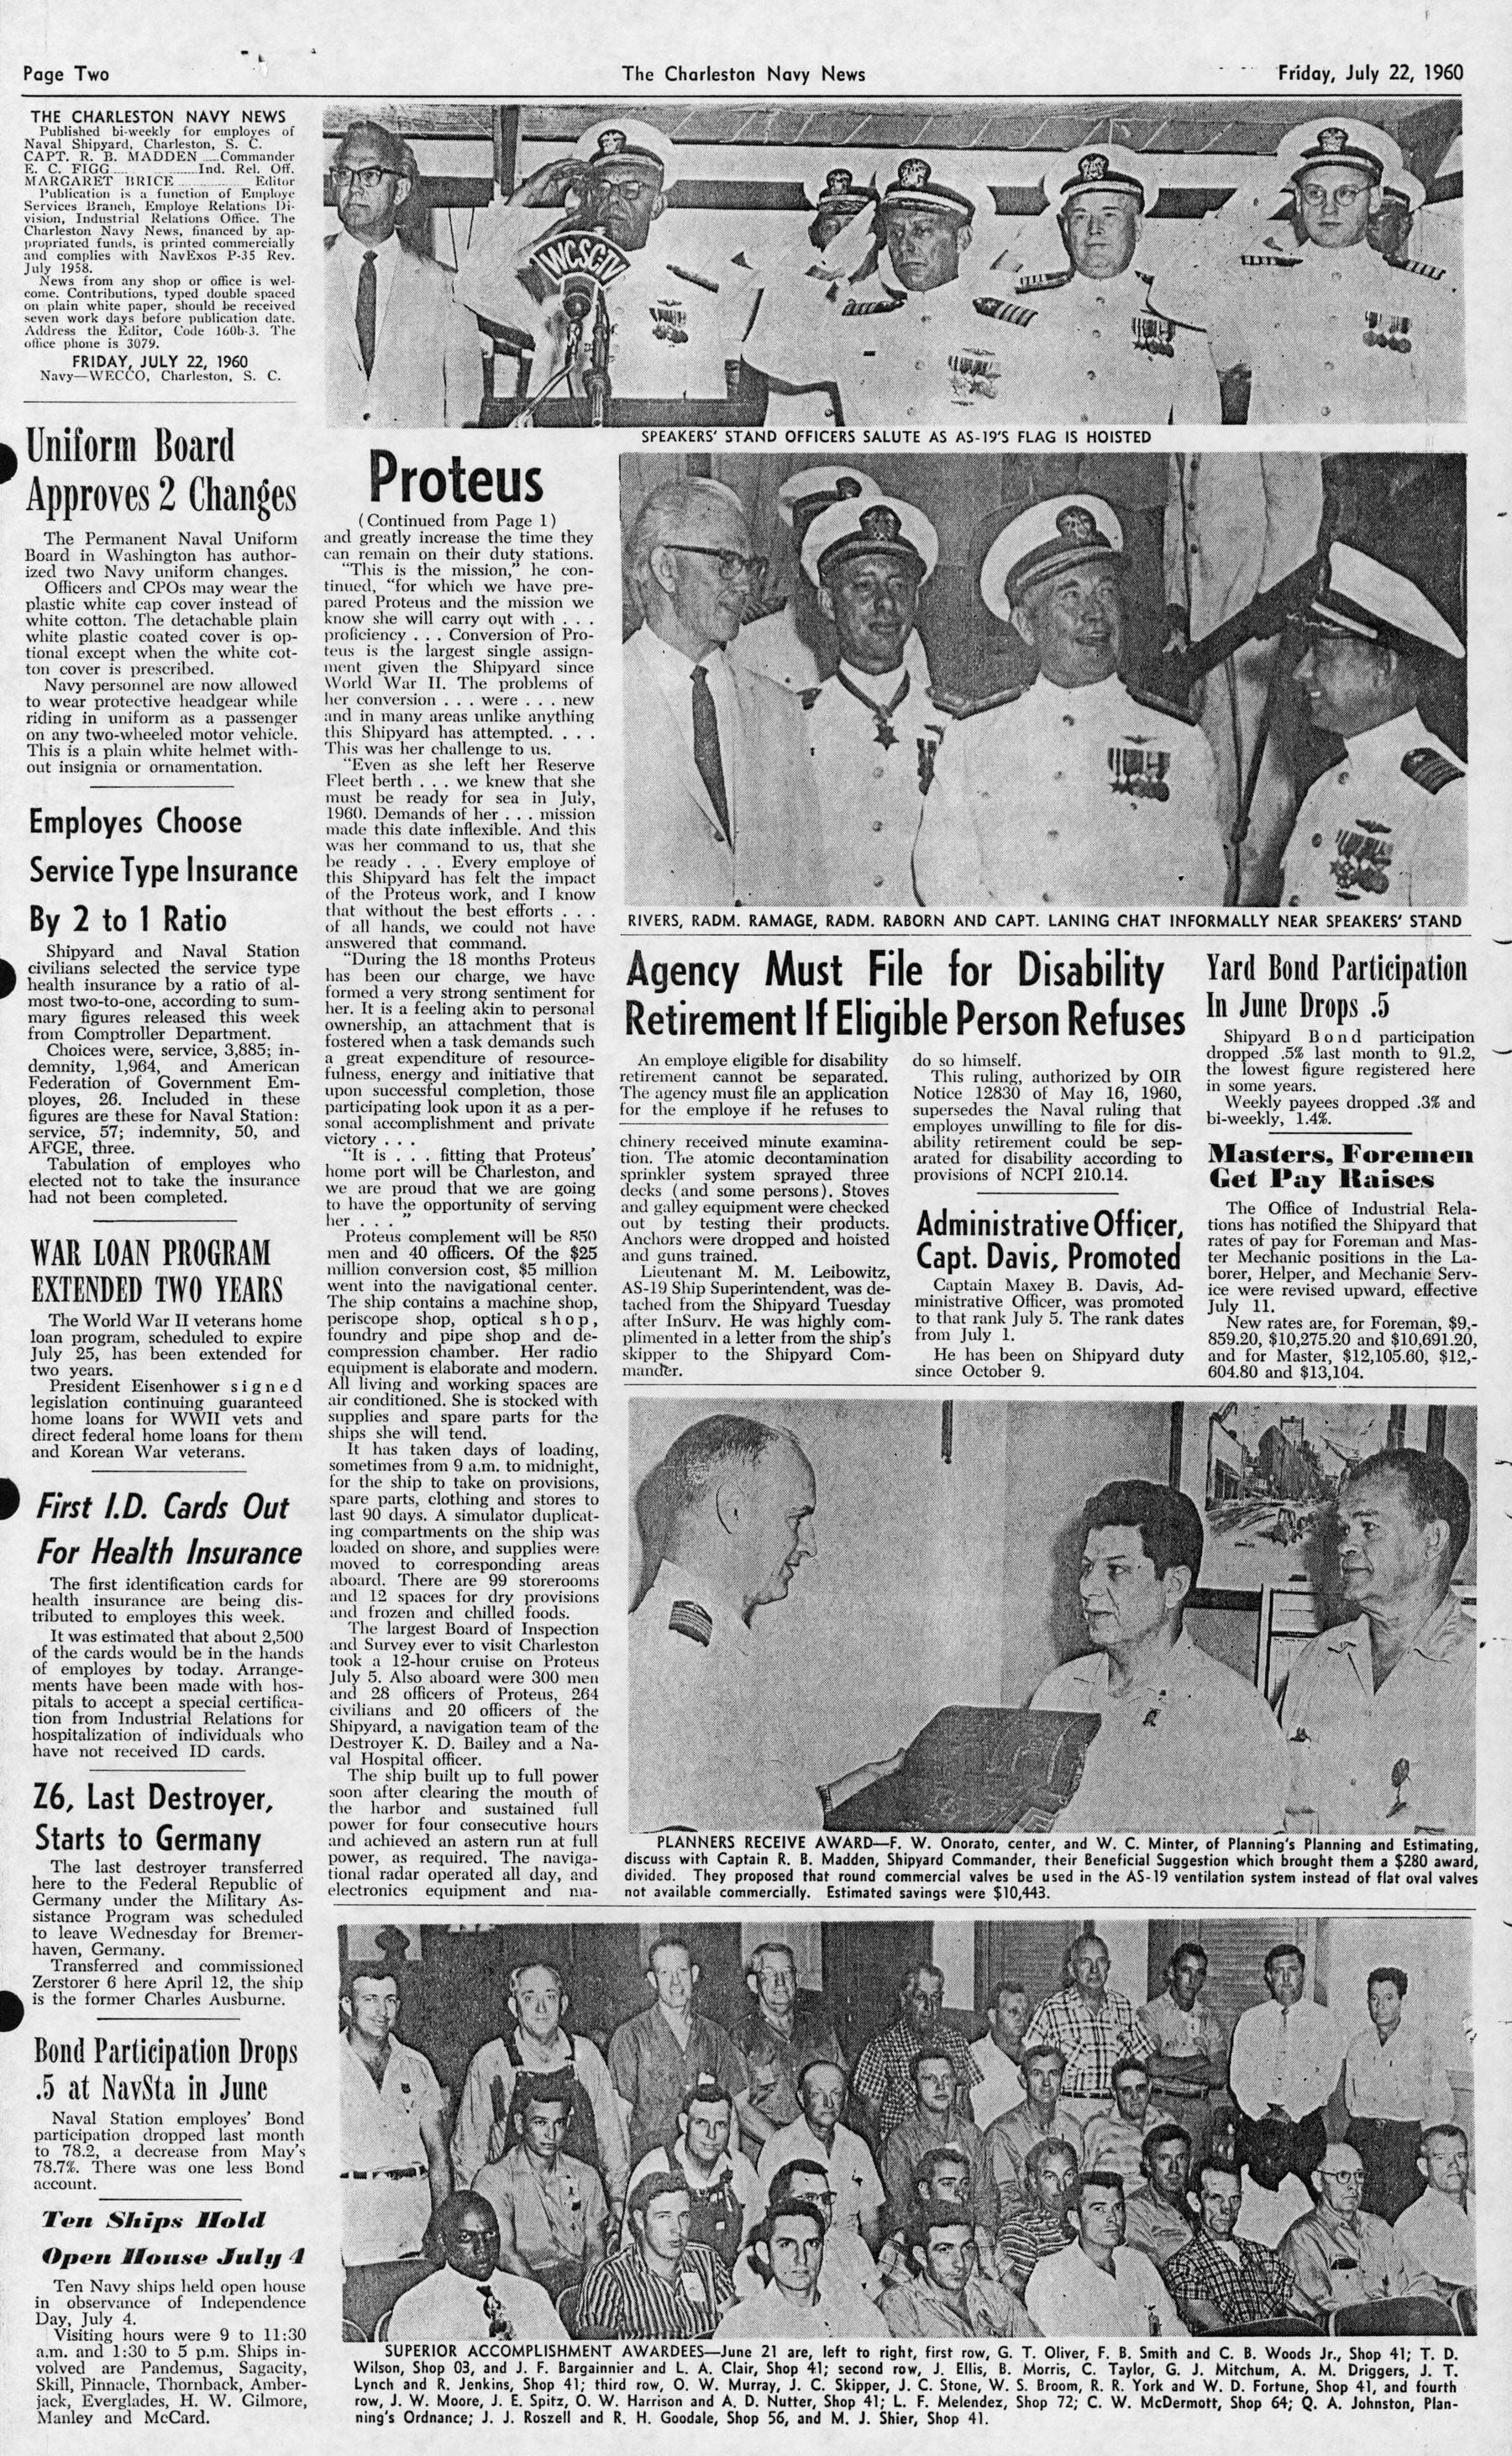 The Charleston Navy News, Volume 19, Edition 1, page ii